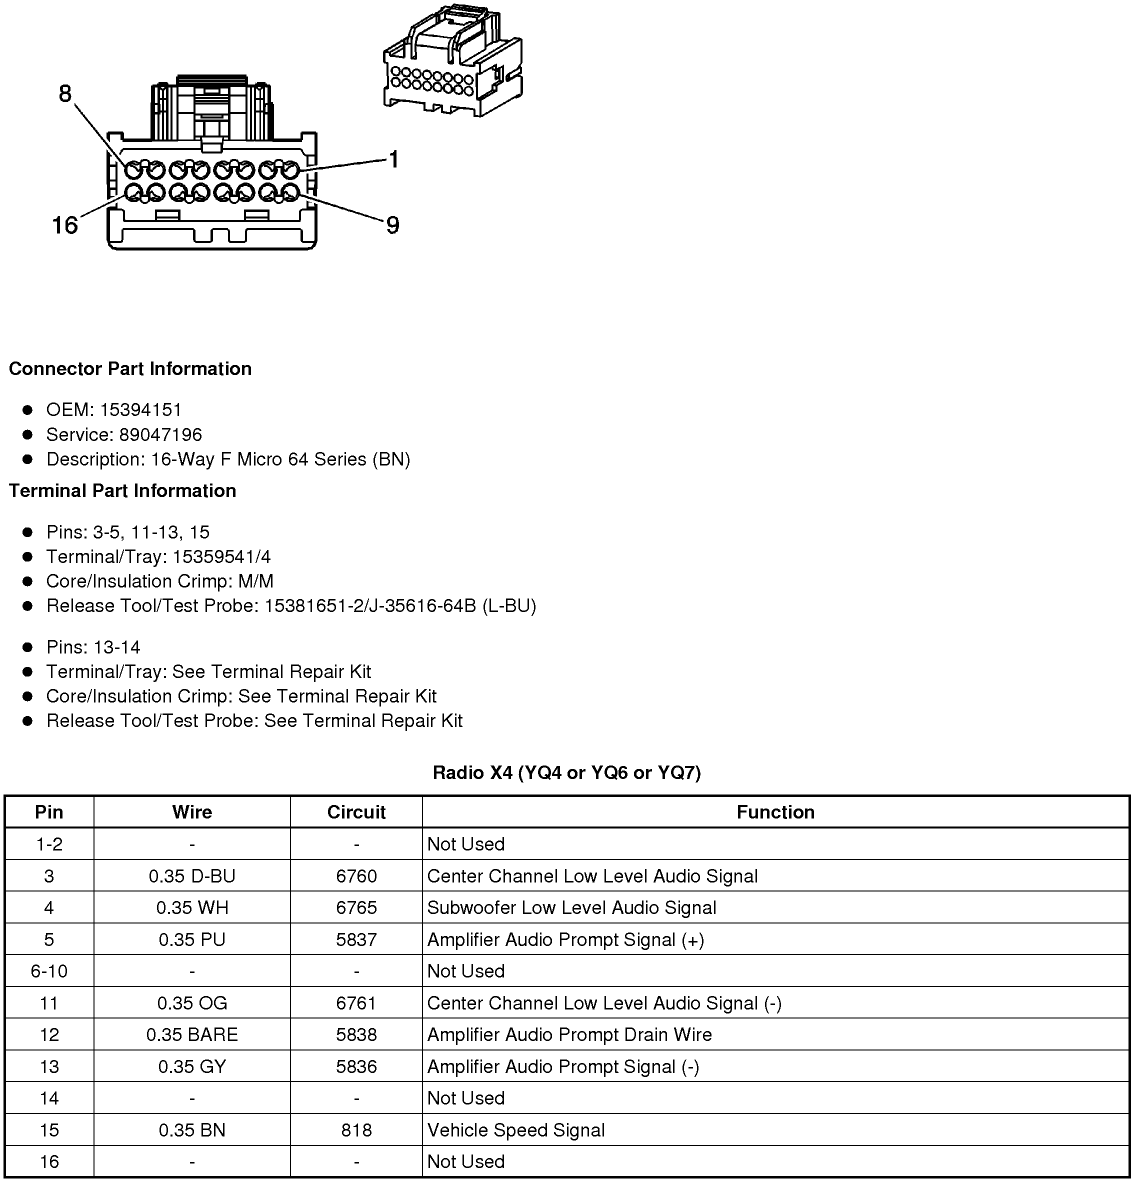 Wiring Diagram Or Schematic For An 2008 Sts